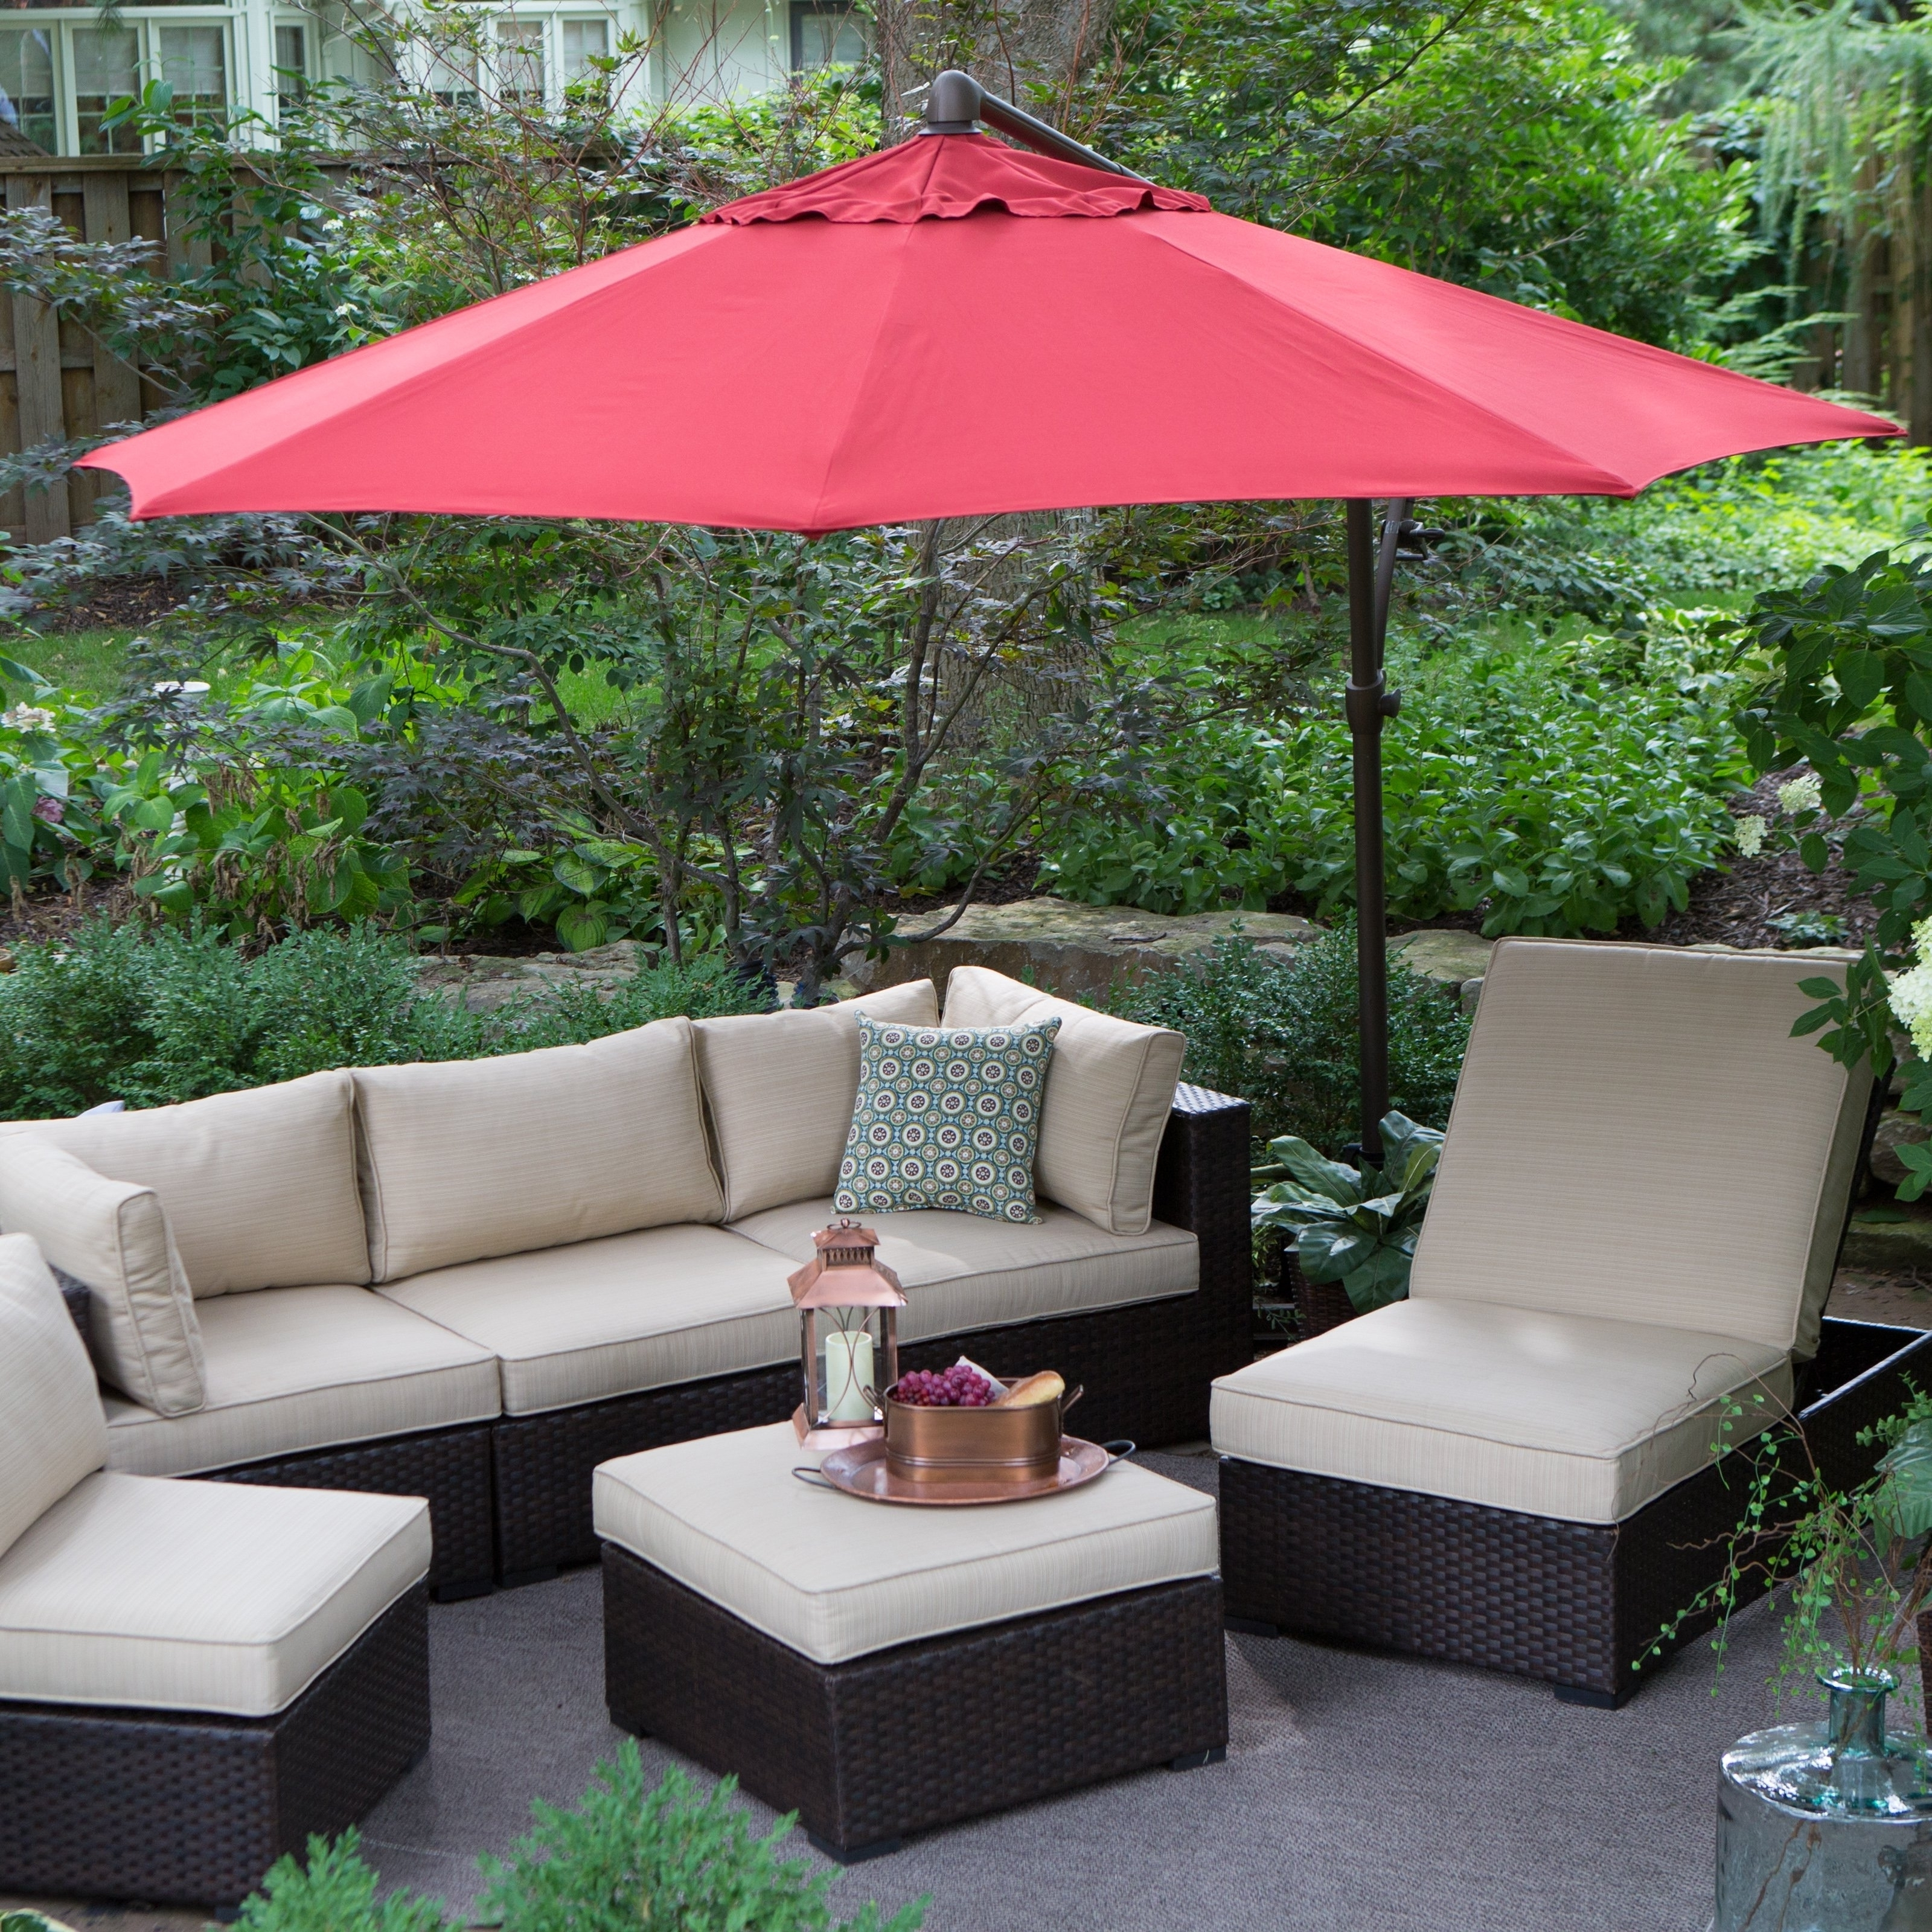 Patio Umbrella Buying Guide — Home Design Within Preferred Offset Cantilever Patio Umbrellas (View 20 of 20)